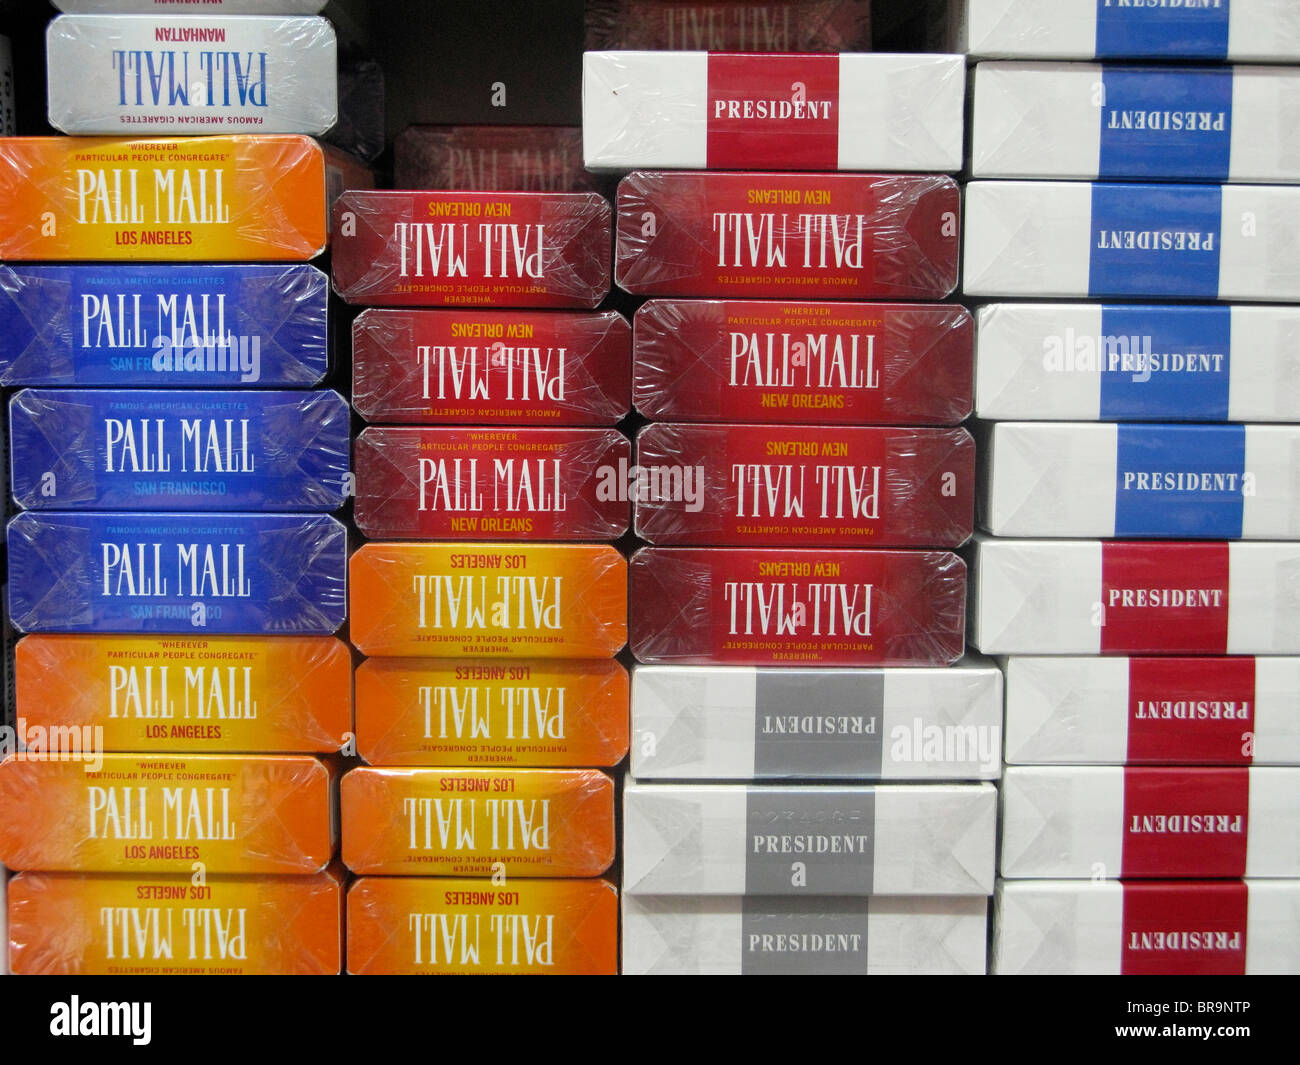 Cigarettes Marlboro wholesale Hawaii